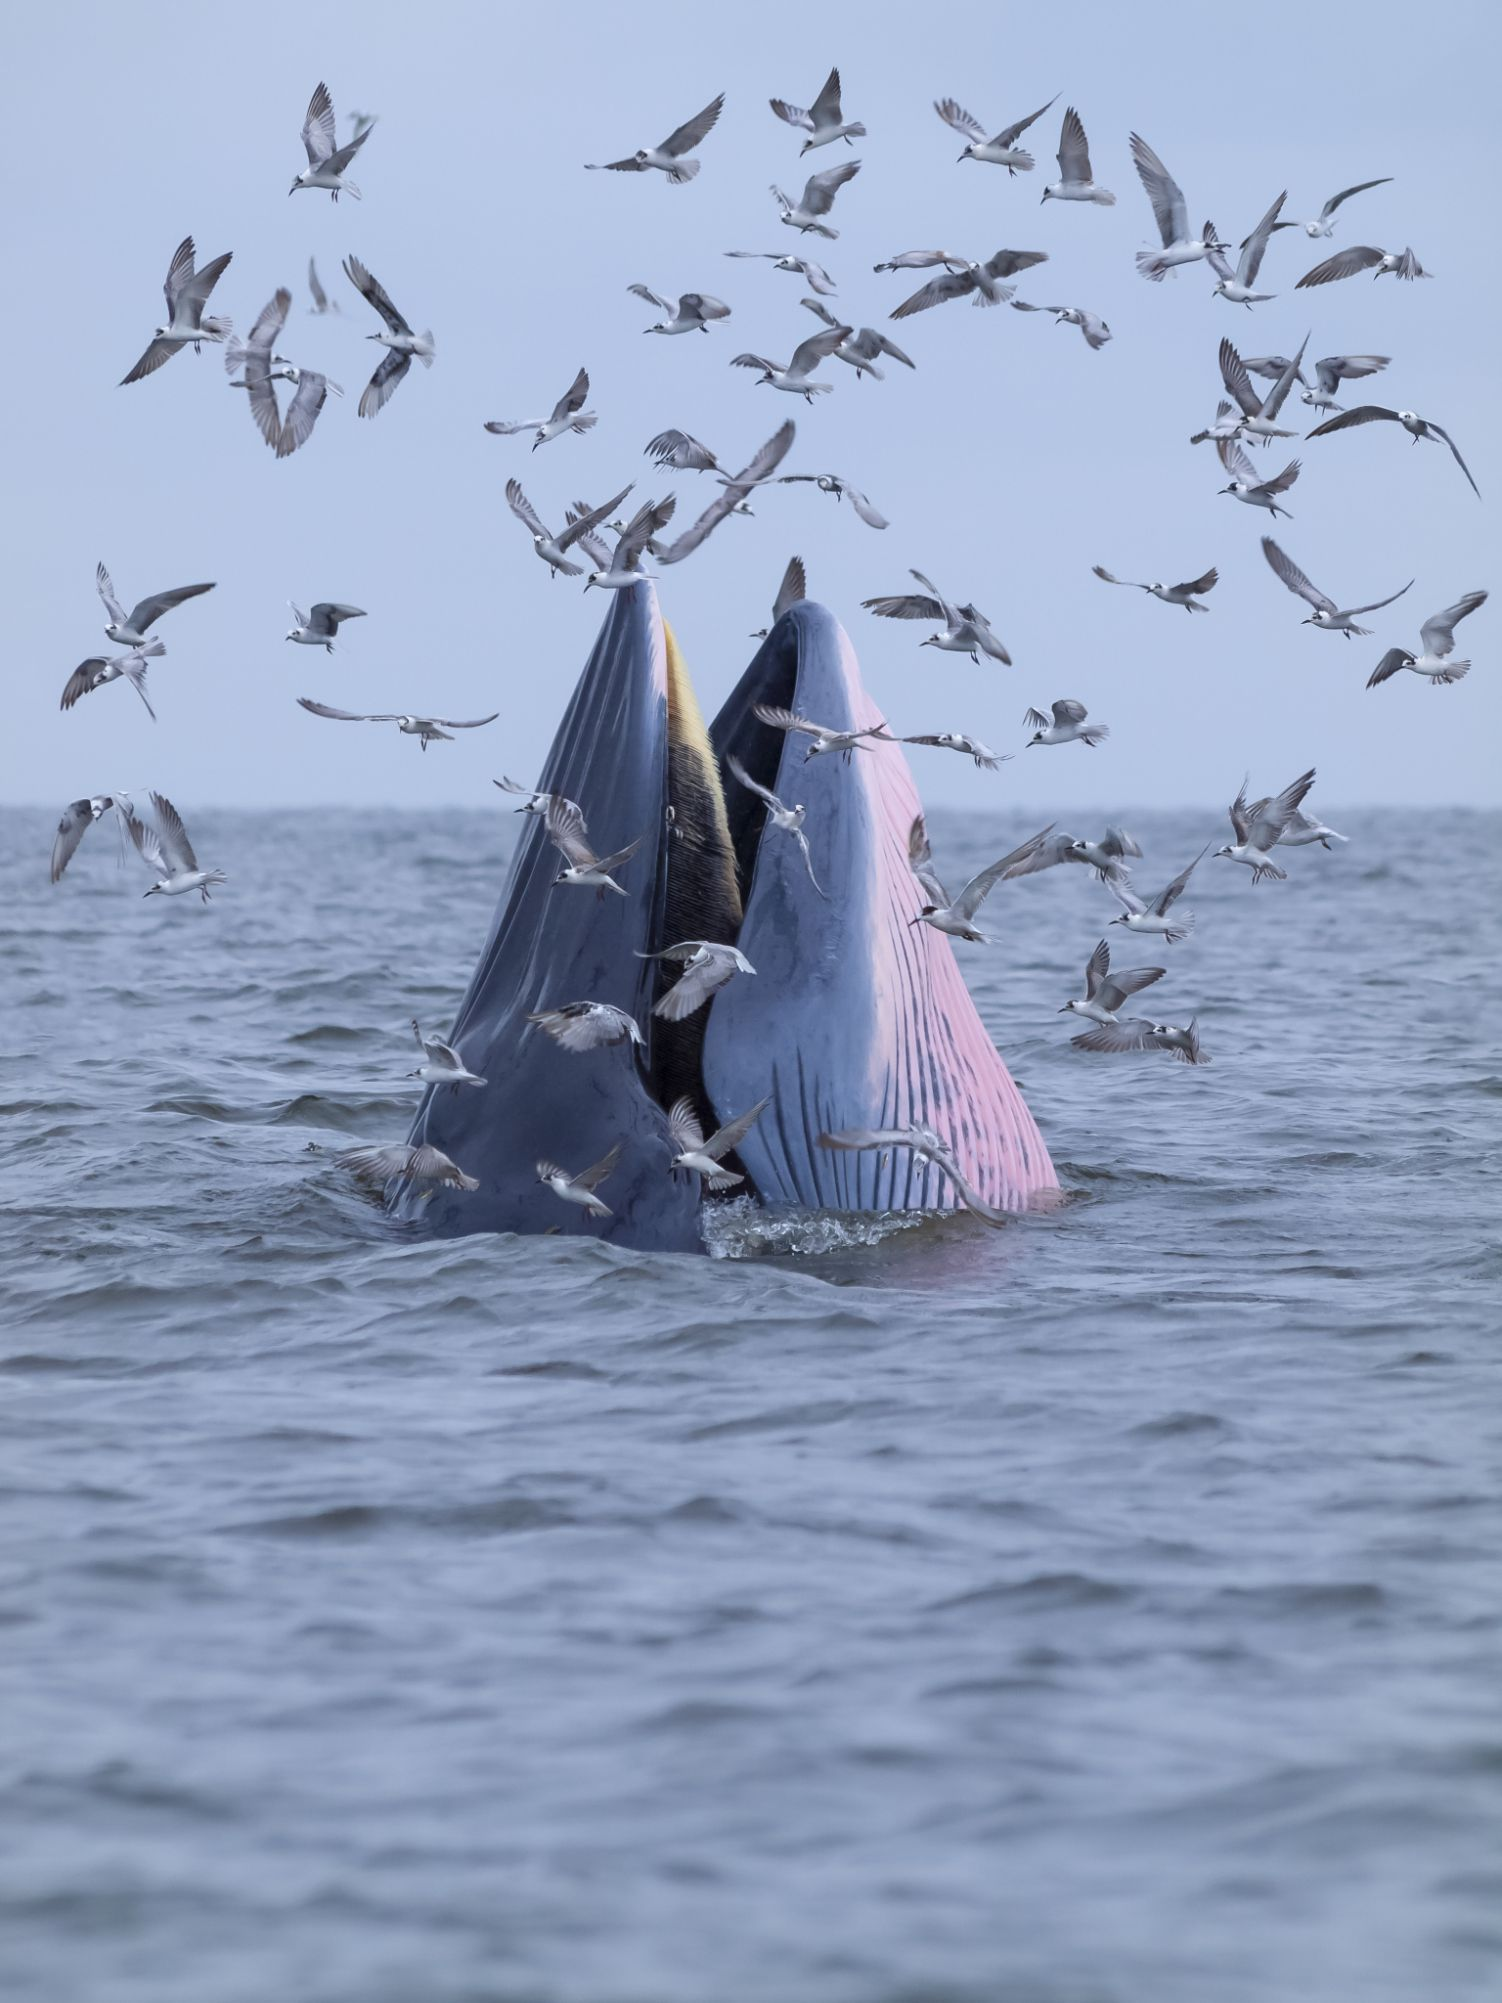 photos and descriptions of 19 different types of whales